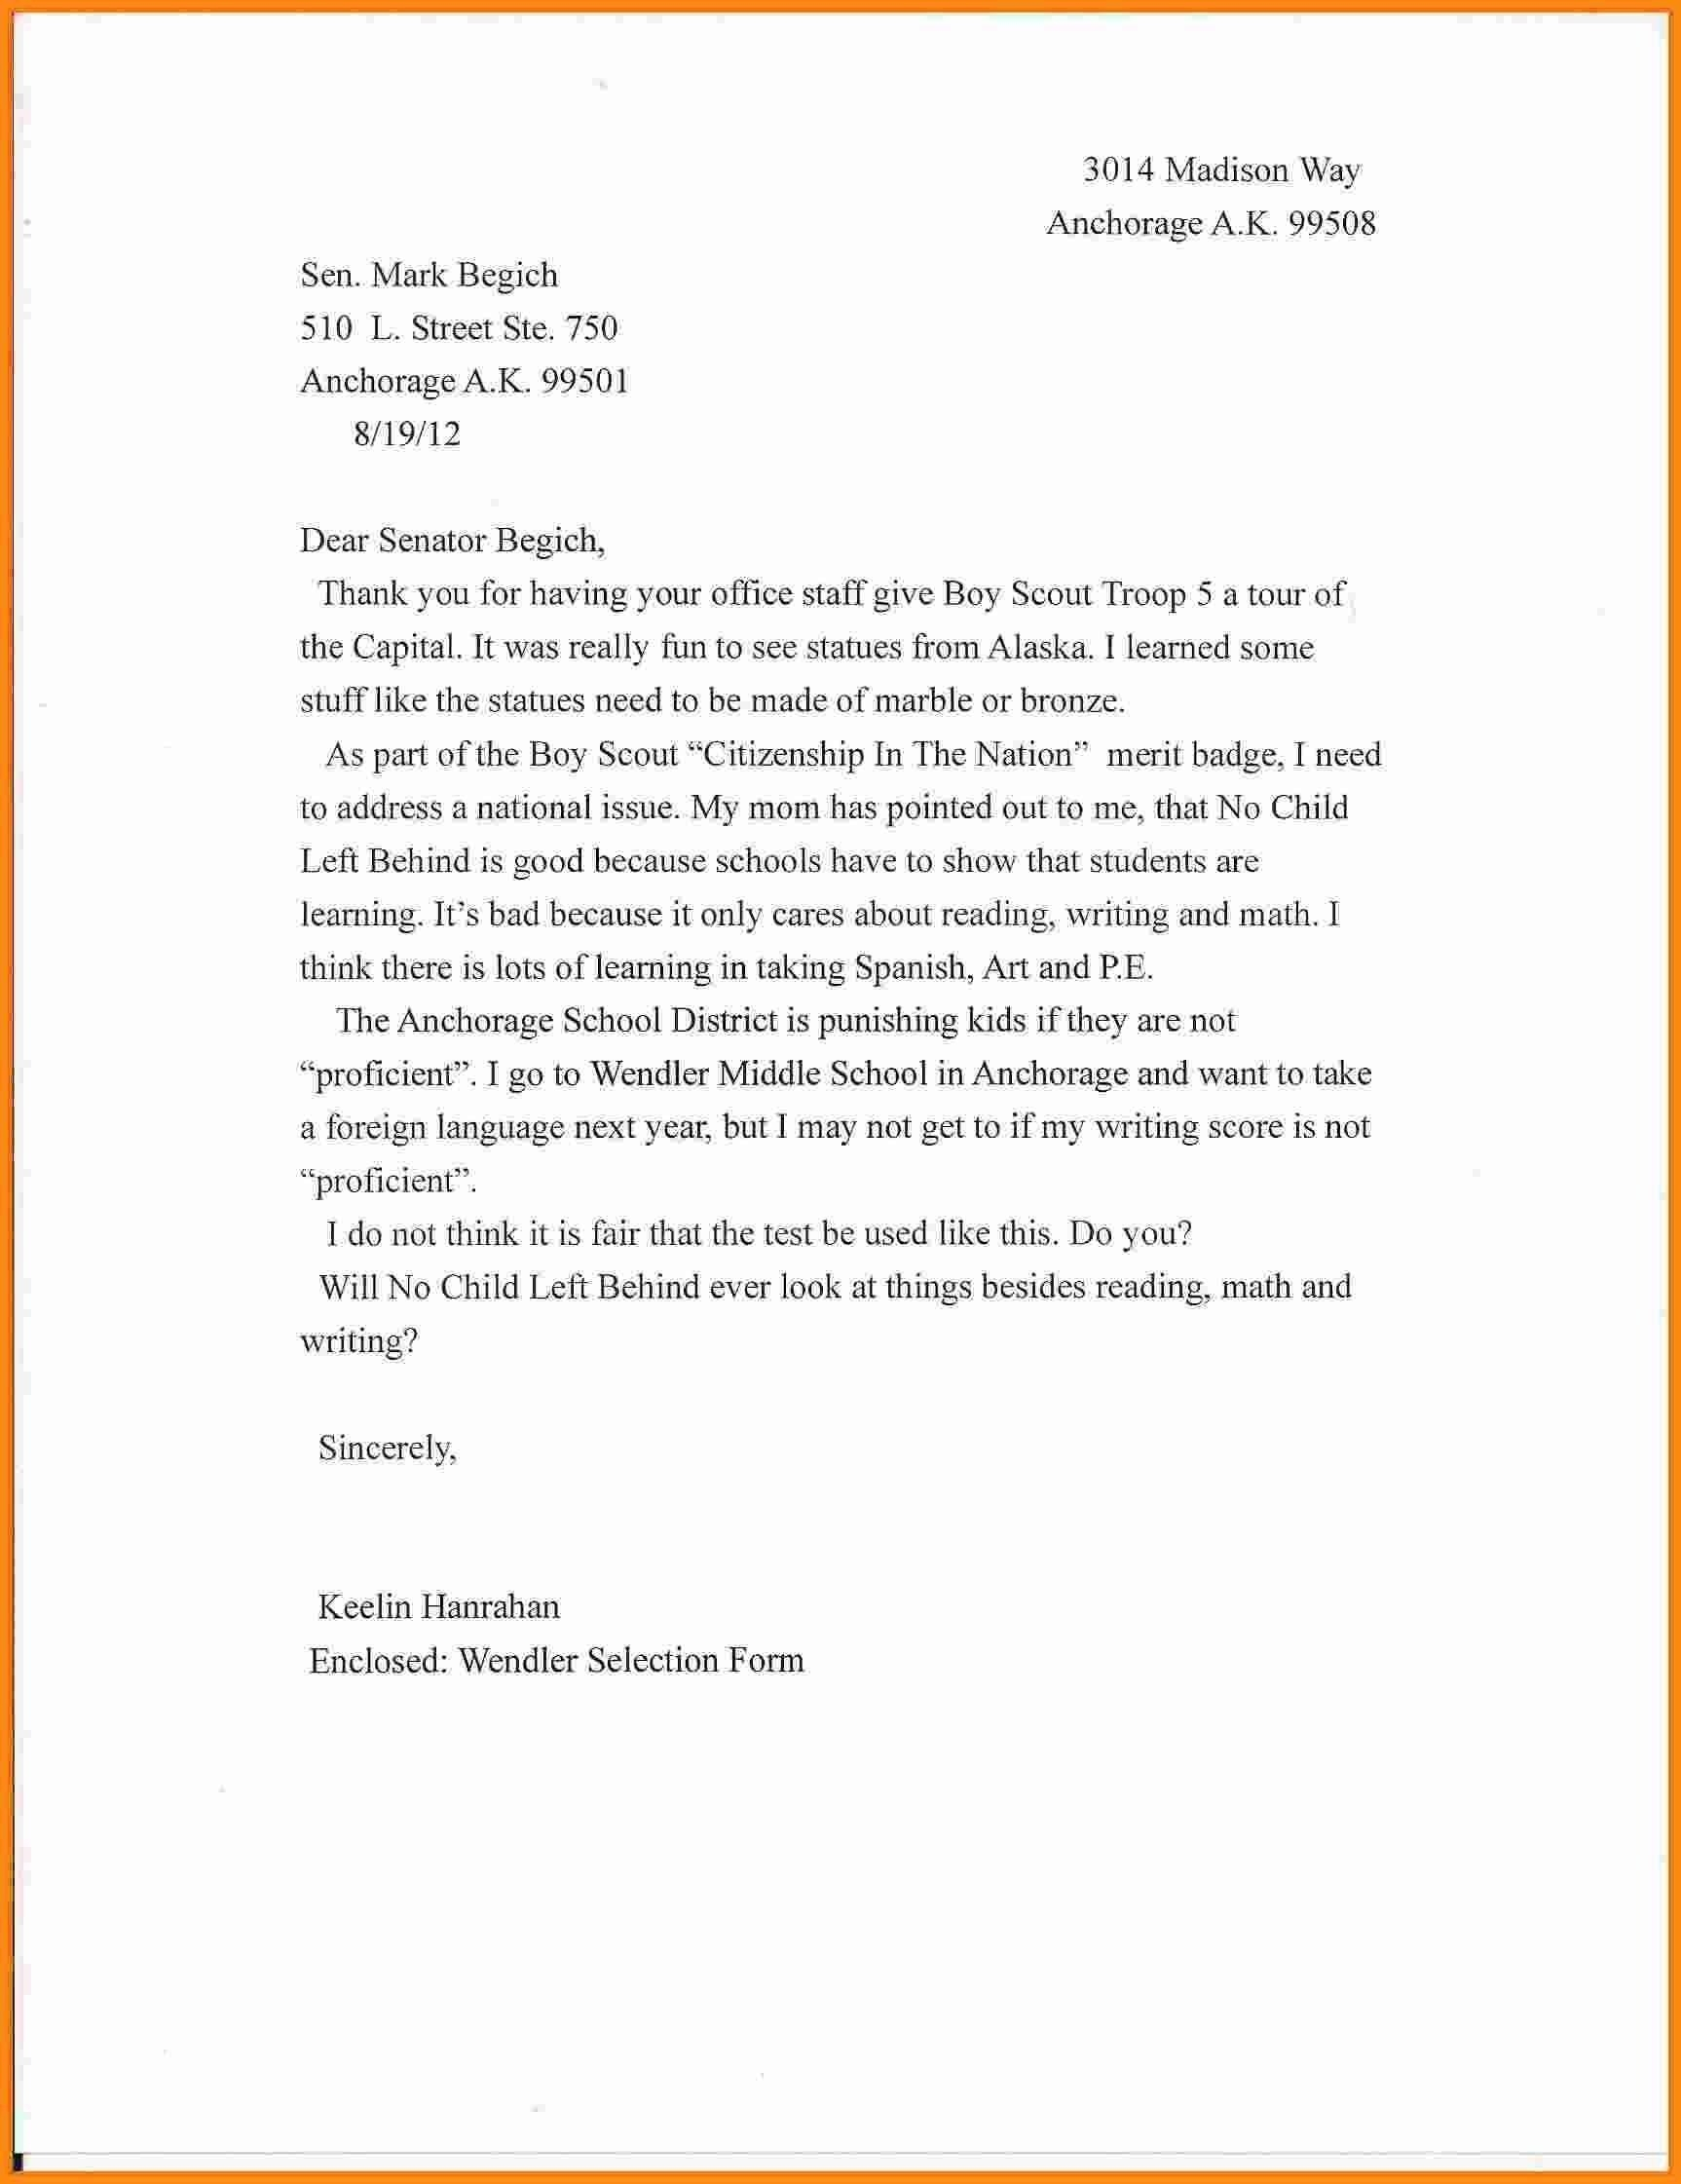 English Letter Format For School Copy Formal Letter Format For within Formal Letter Format For School 21731